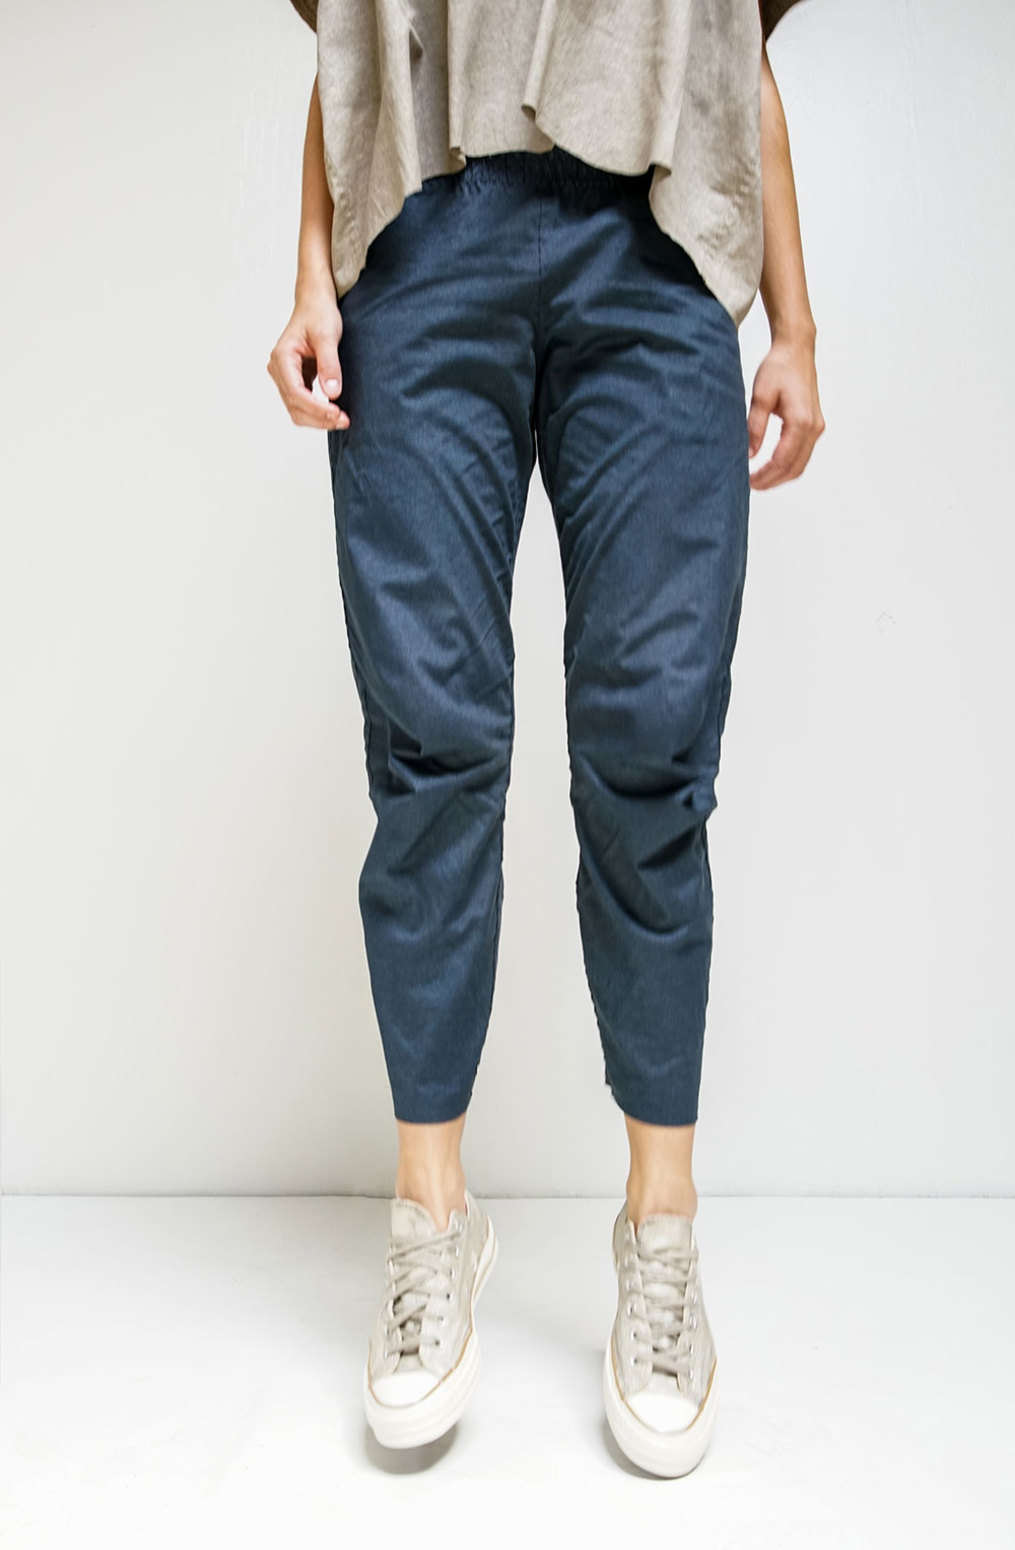 Alabama chanin gilded pant 3